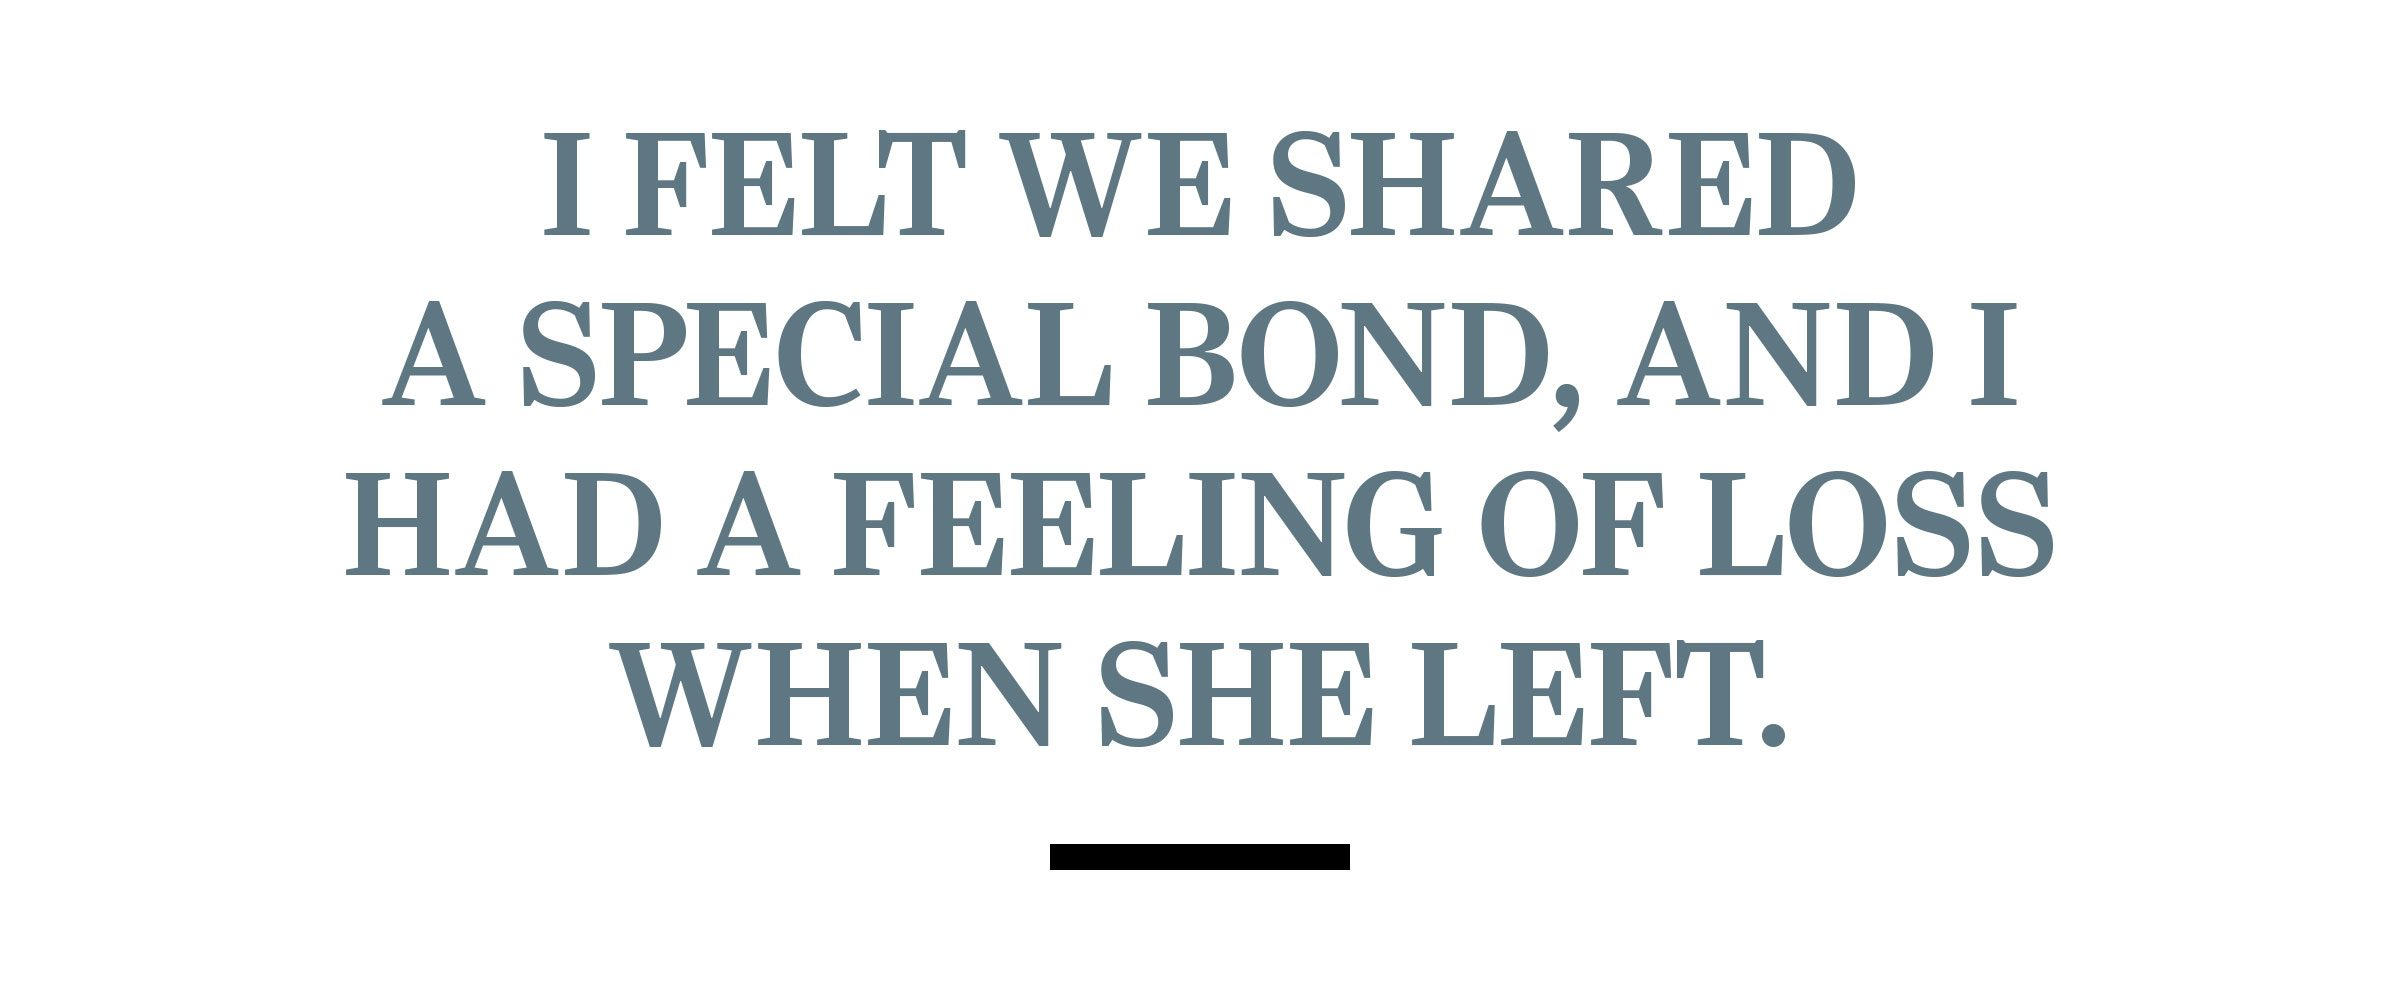 text: I felt we shared a special bond, and I had a feeling of loss when she left.